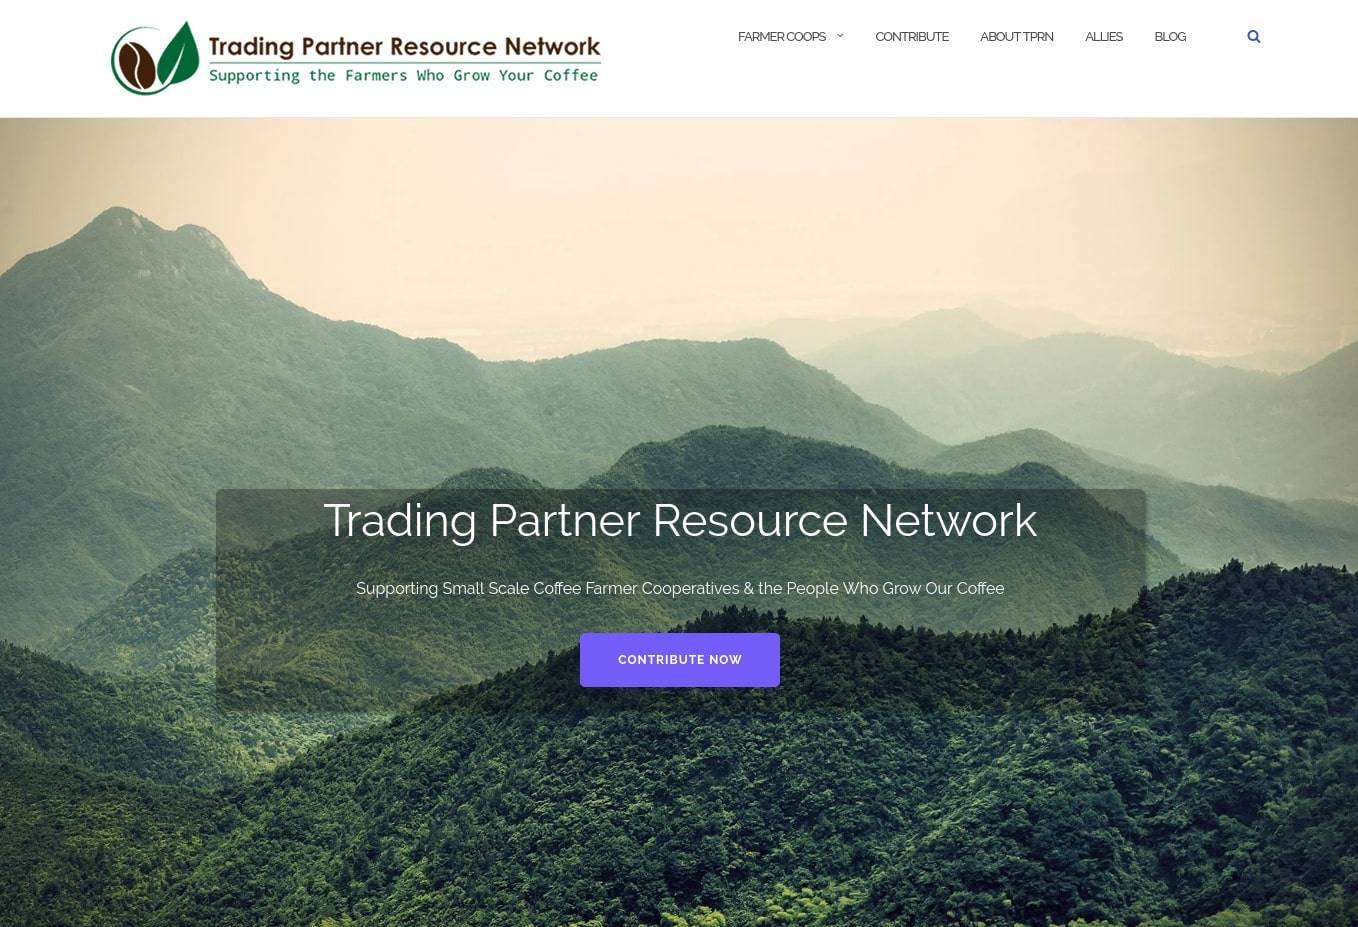 Trading Partner Resource Network Screenshot